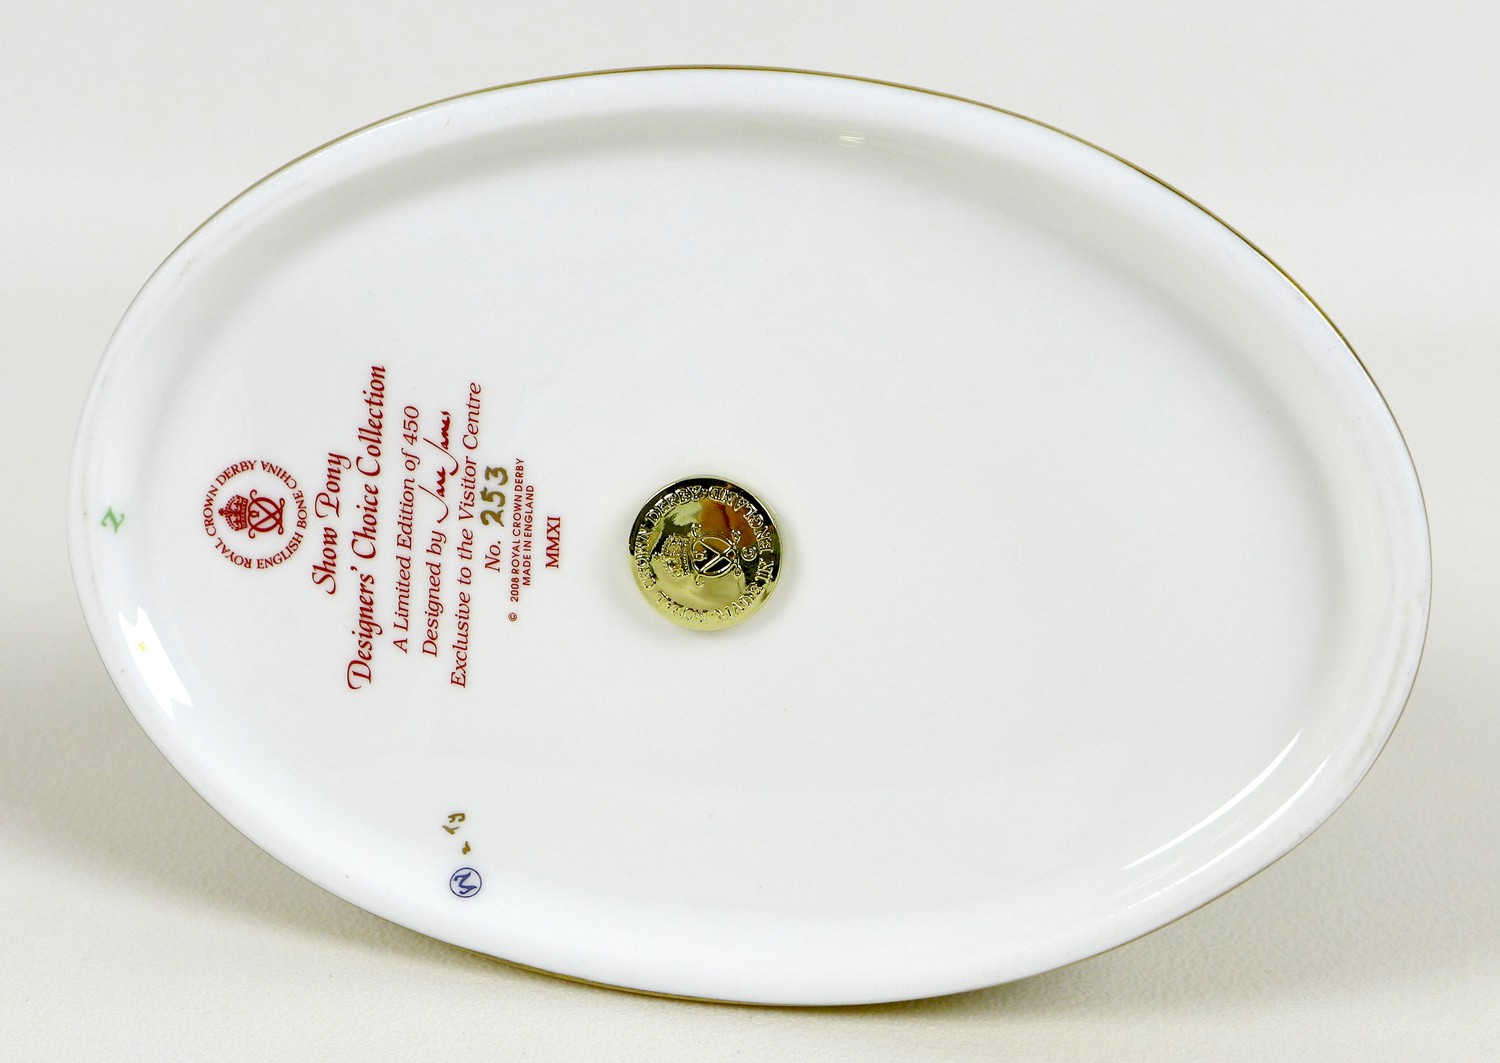 A Royal Crown Derby paperweight, modelled as 'The Show Pony', Designers' Choice Collection, - Image 8 of 9